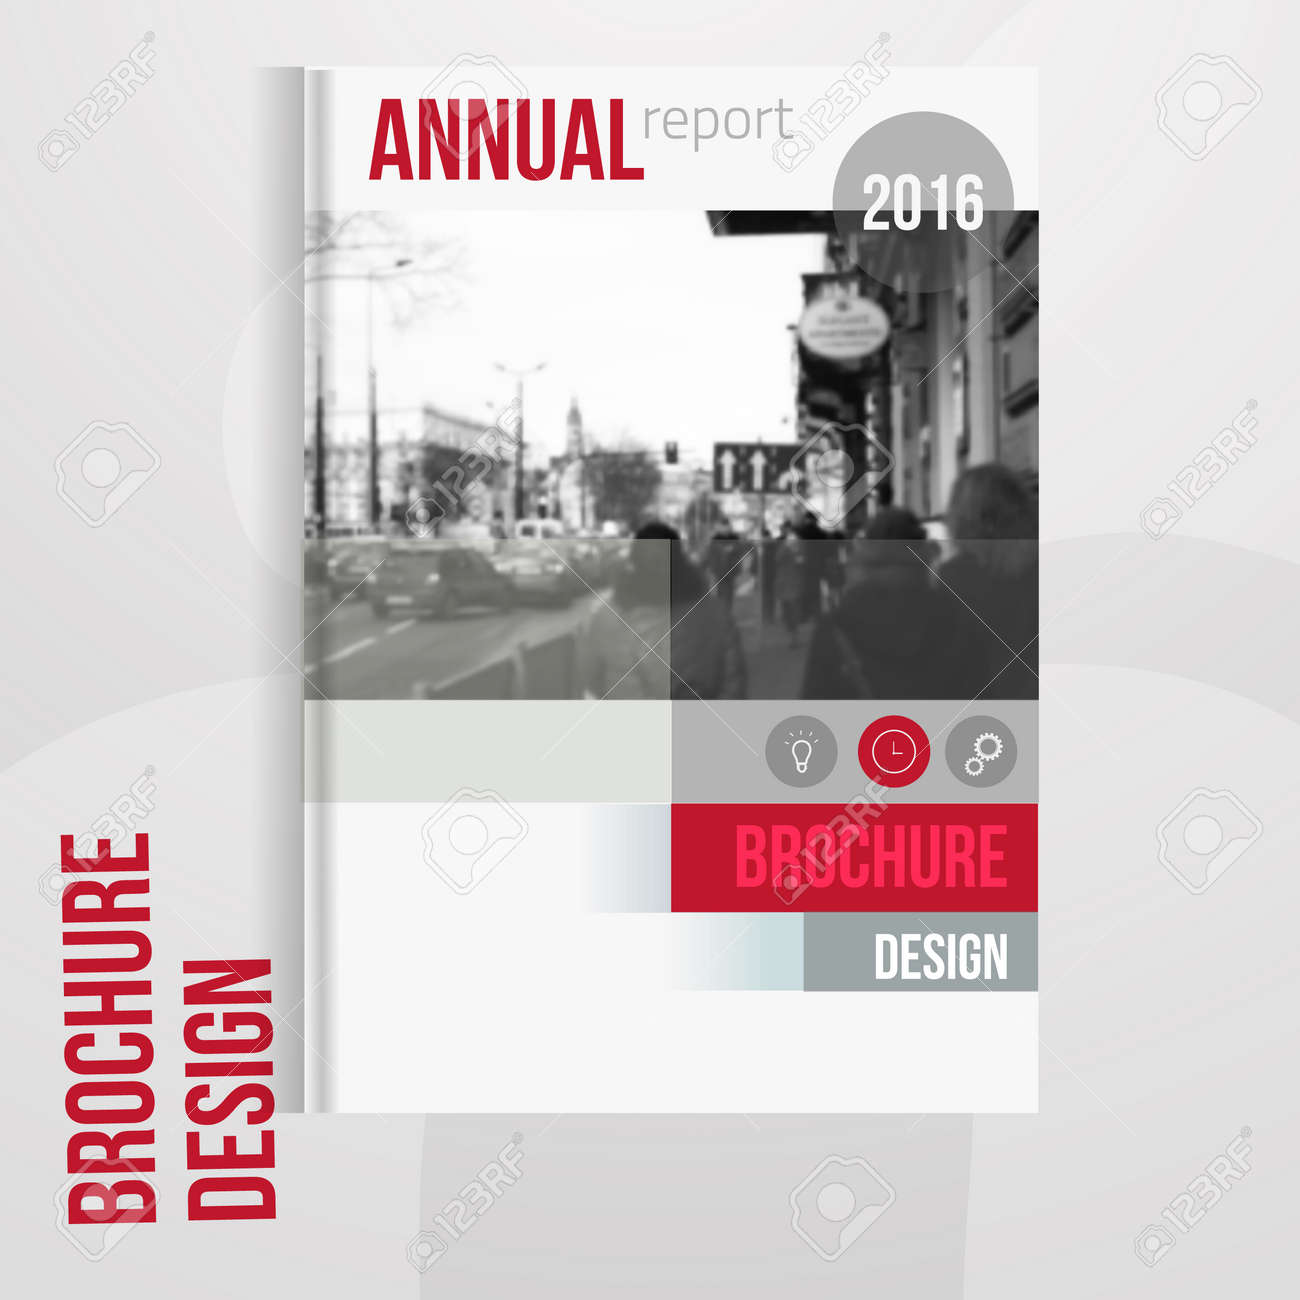 Vector brochure cover template with blured city landscape. Business brochure cover design, flyer brochure cover, professional corporate brochure cover. - 54714568